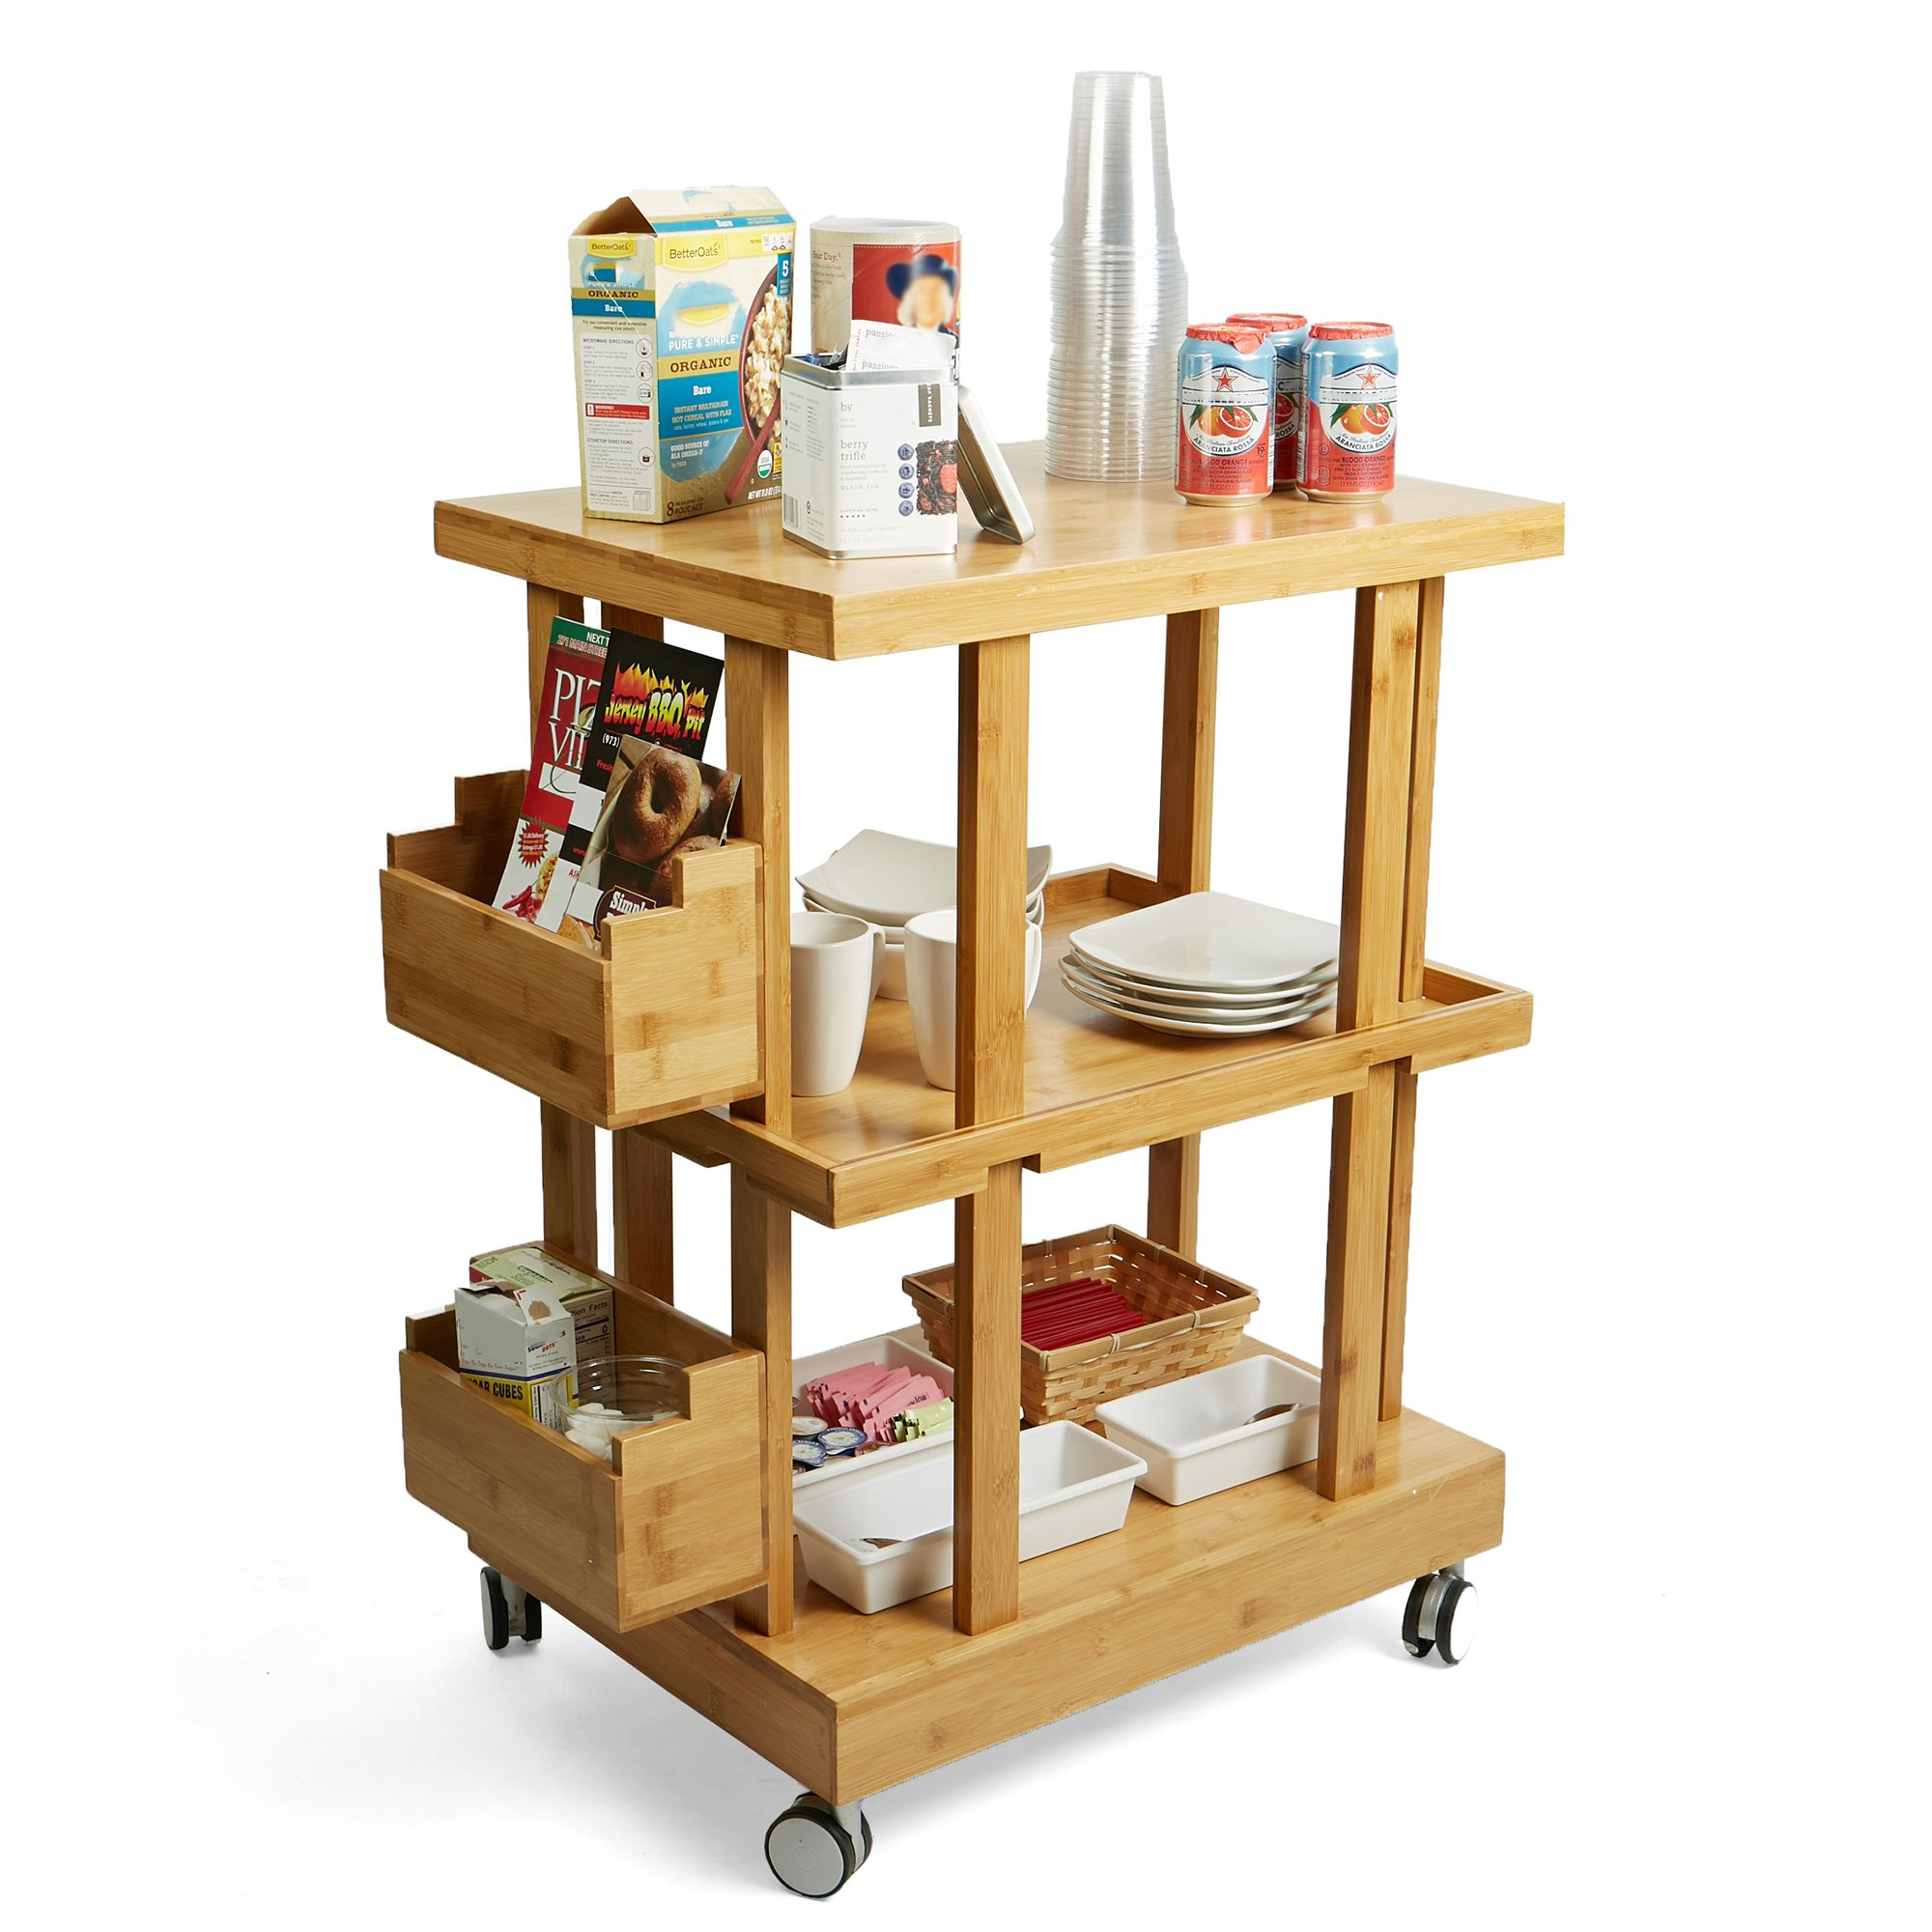 Mind Reader 3-Tier Kitchen Utility Cart with 2 Storage Compartments, Bamboo Wood, Brown by Mind Reader (Image #3)